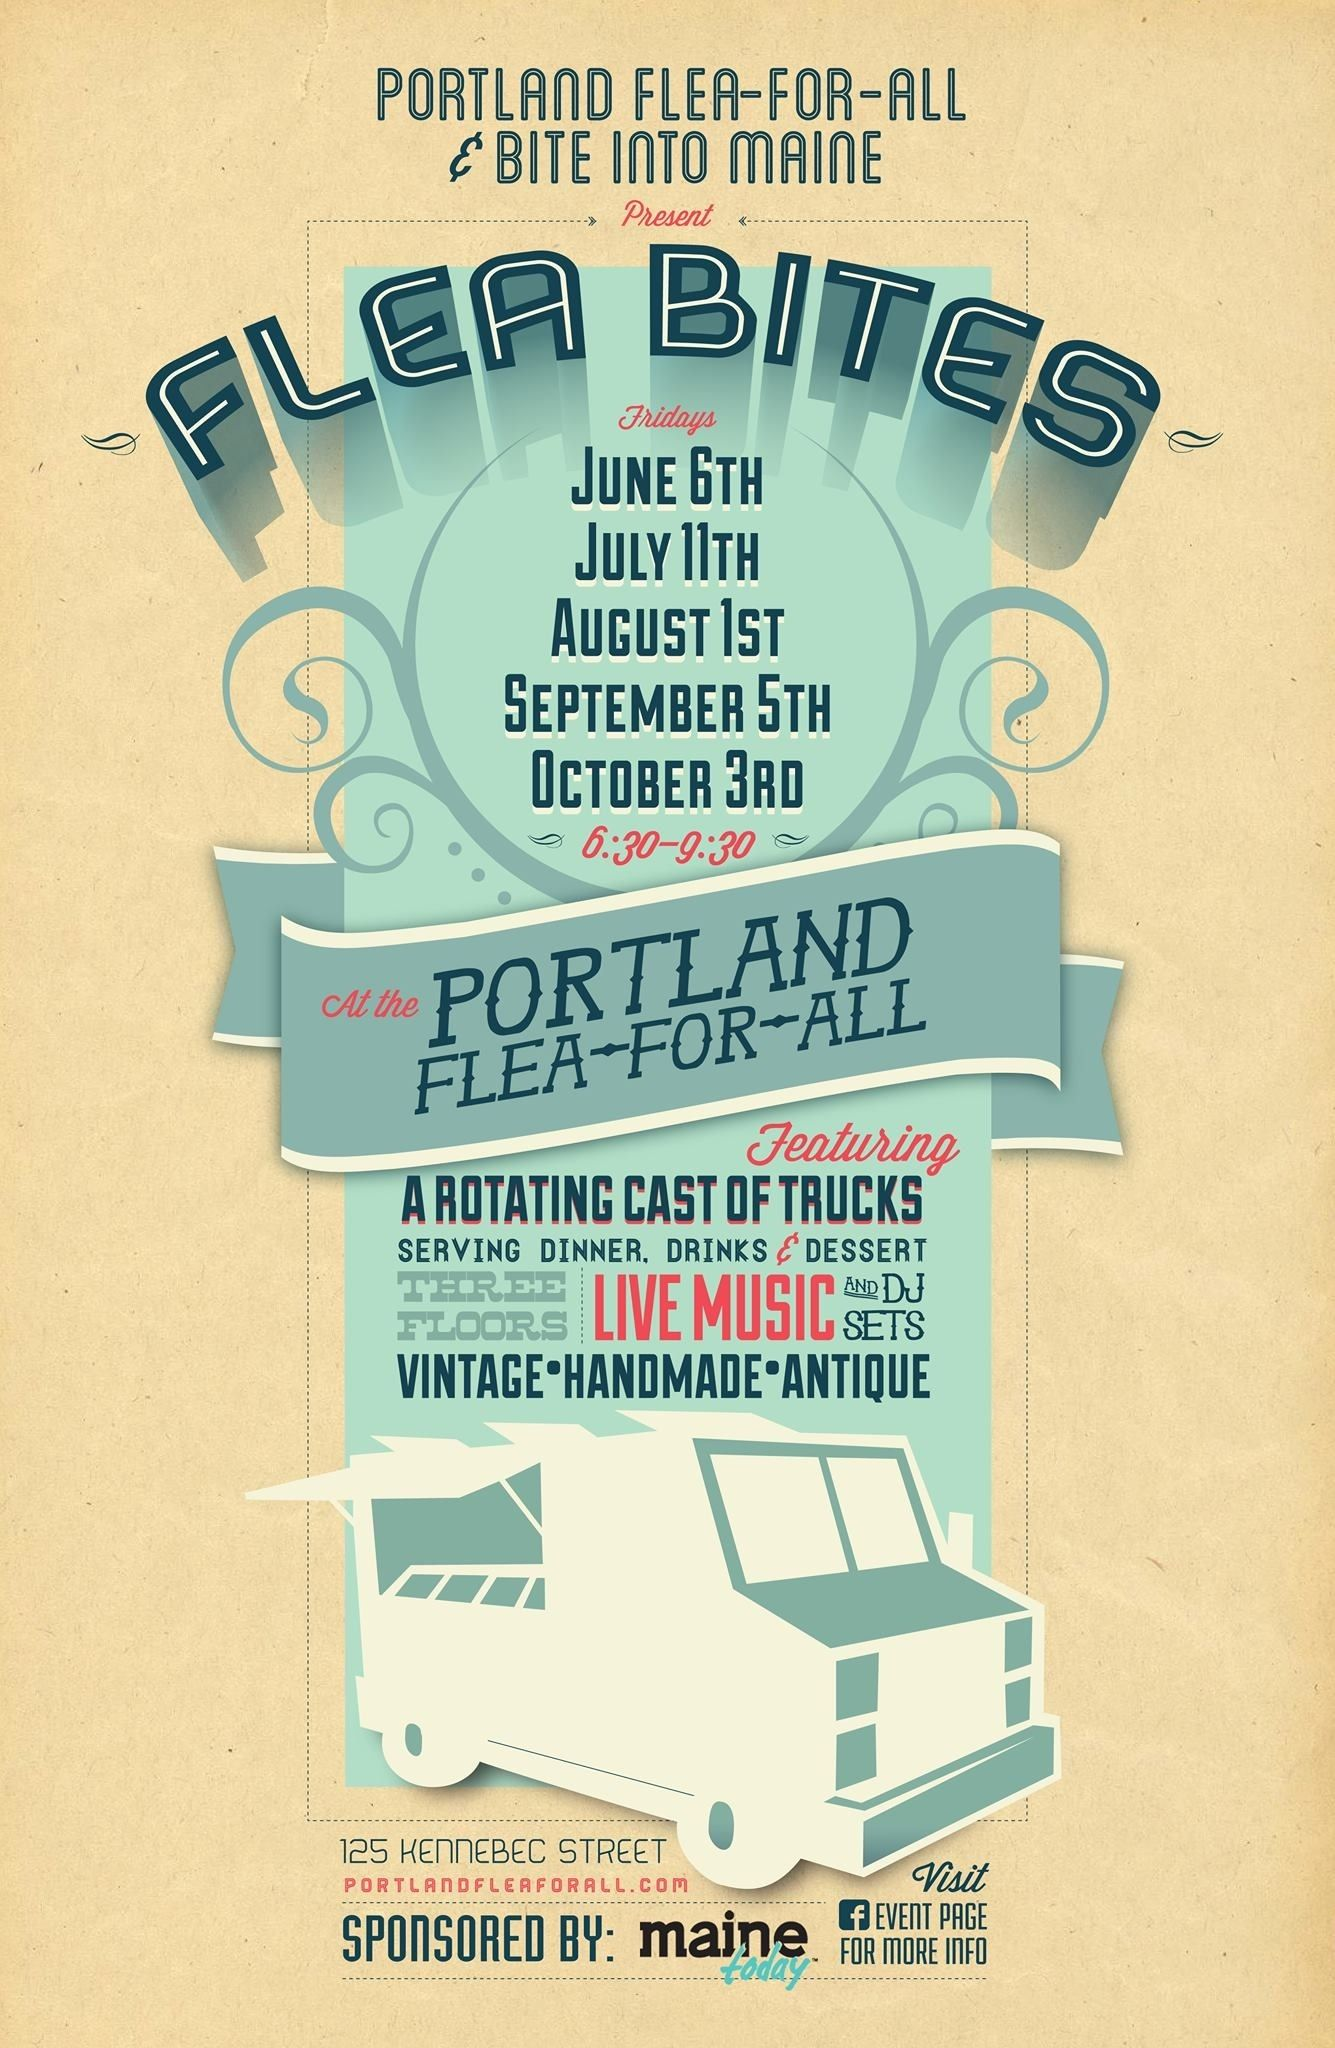 Portland ME:  All Summer: Flea Bites, a monthly food truck festival at the Flea! Enjoy the best from a rotating cast of food trucks, plus three floors of ...